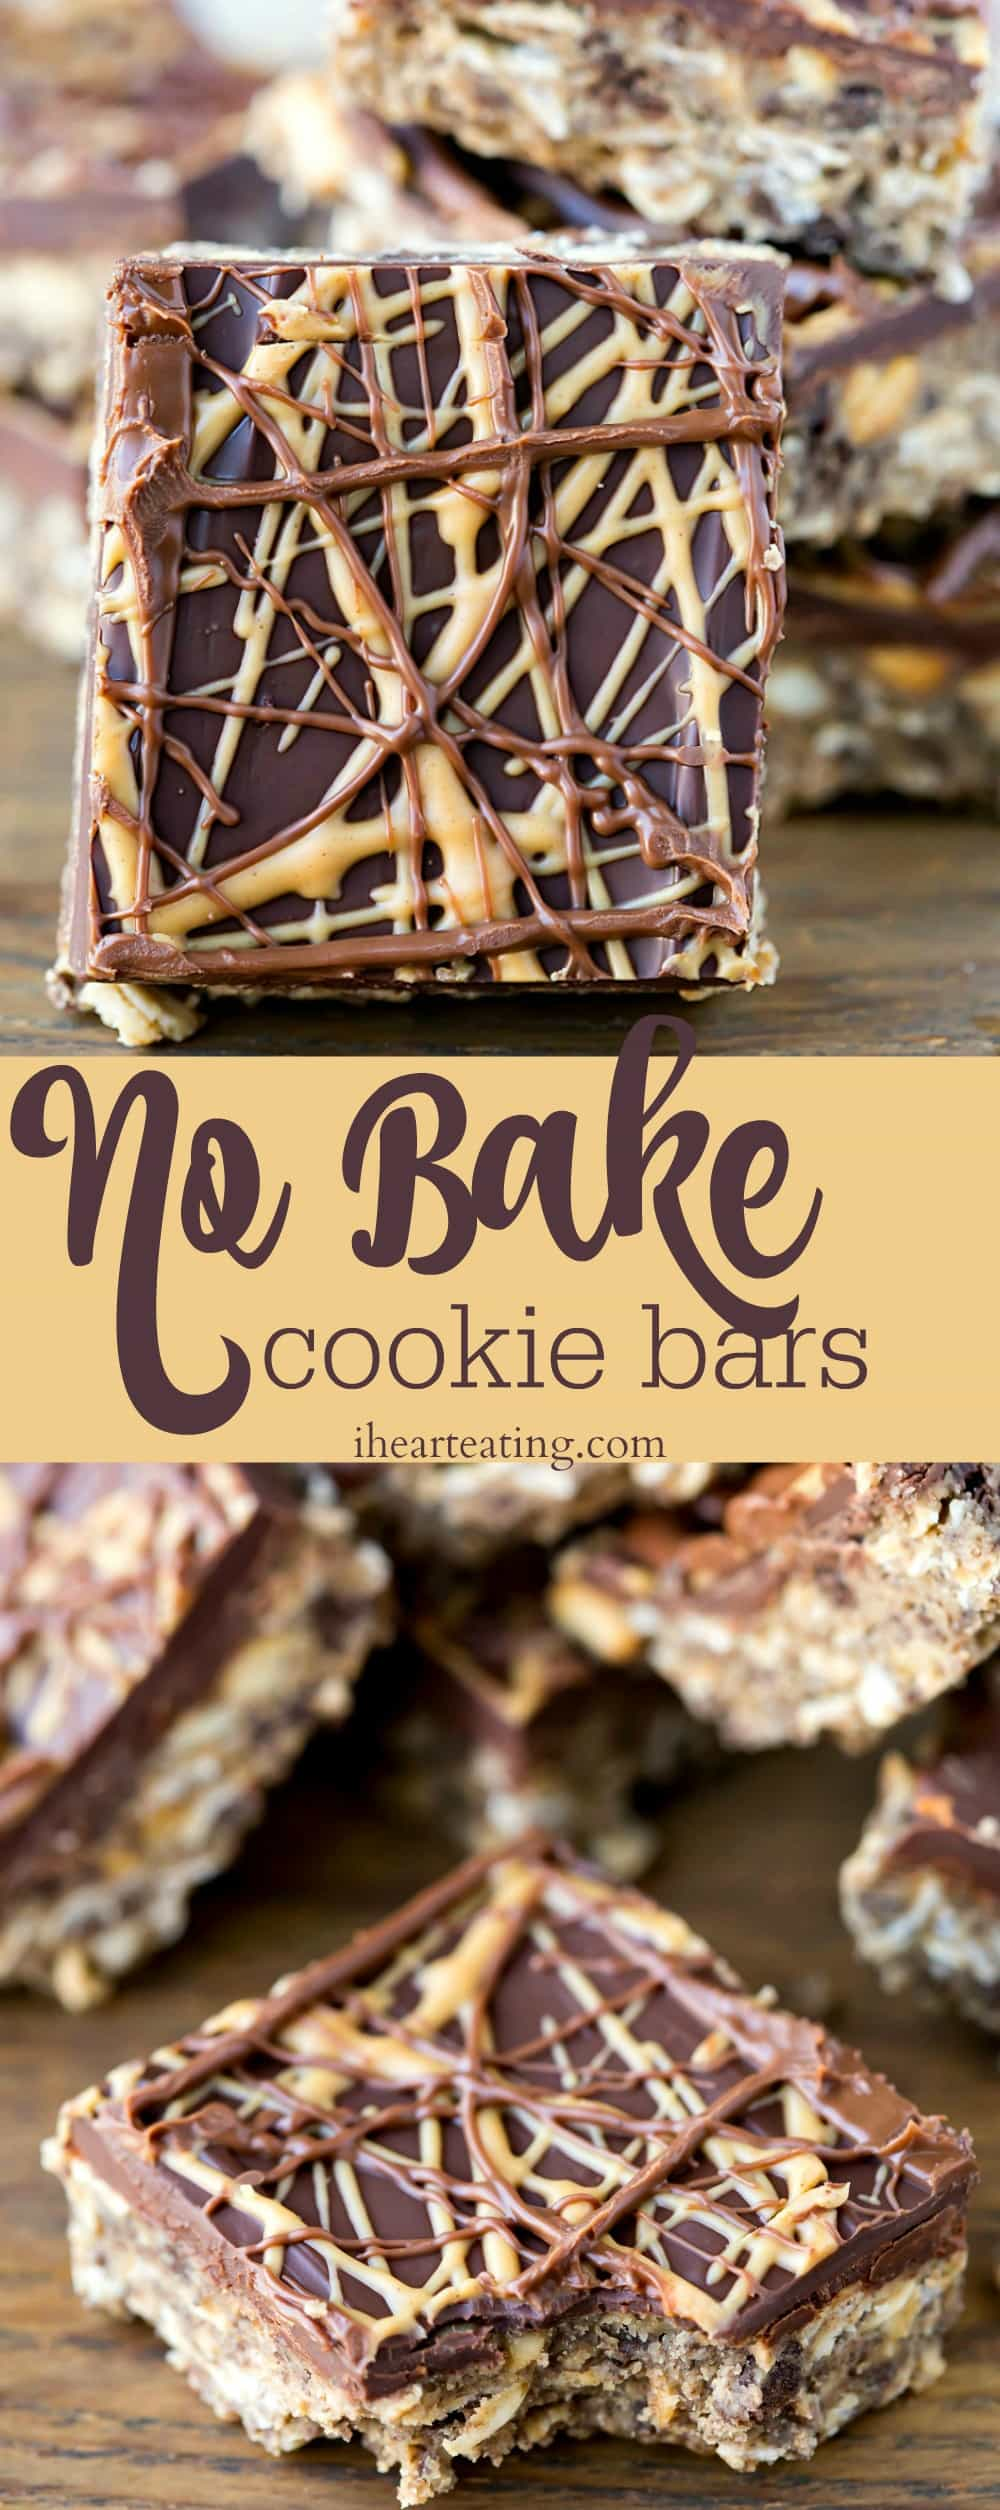 No Bake Cookie Bars are an easy, no-bake dessert recipe that combines chocolate and peanut butter in one yummy cookie bar!